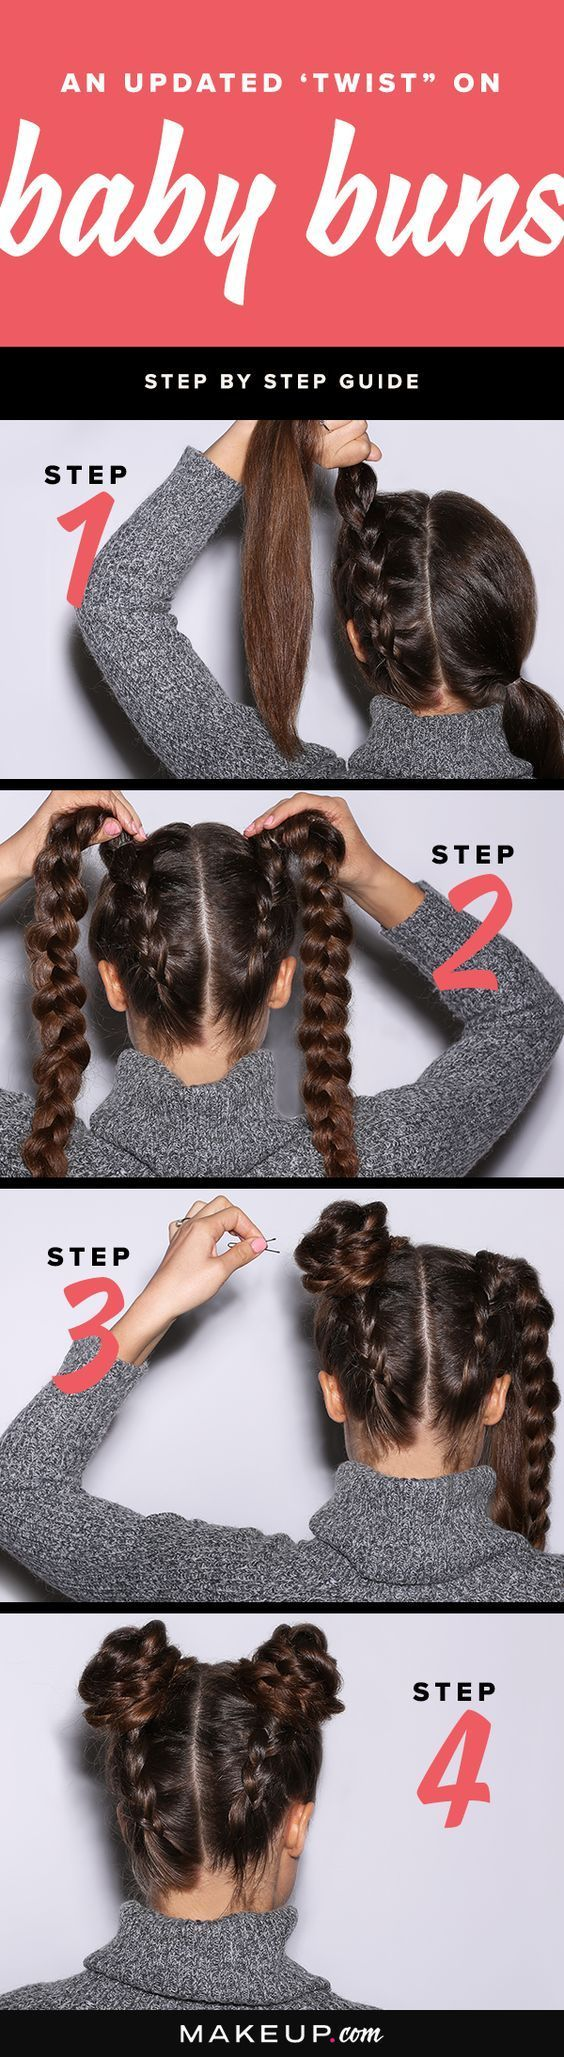 It can be tricky when you wish to try different hairstyles. What is difficult is how to go about new hairstyle ideas? Or imagining how to to dress your hair differently? This is when step-by-step hair tutorials come very handy. They guide you in your effort to look different and gorgeous. I am sure you …